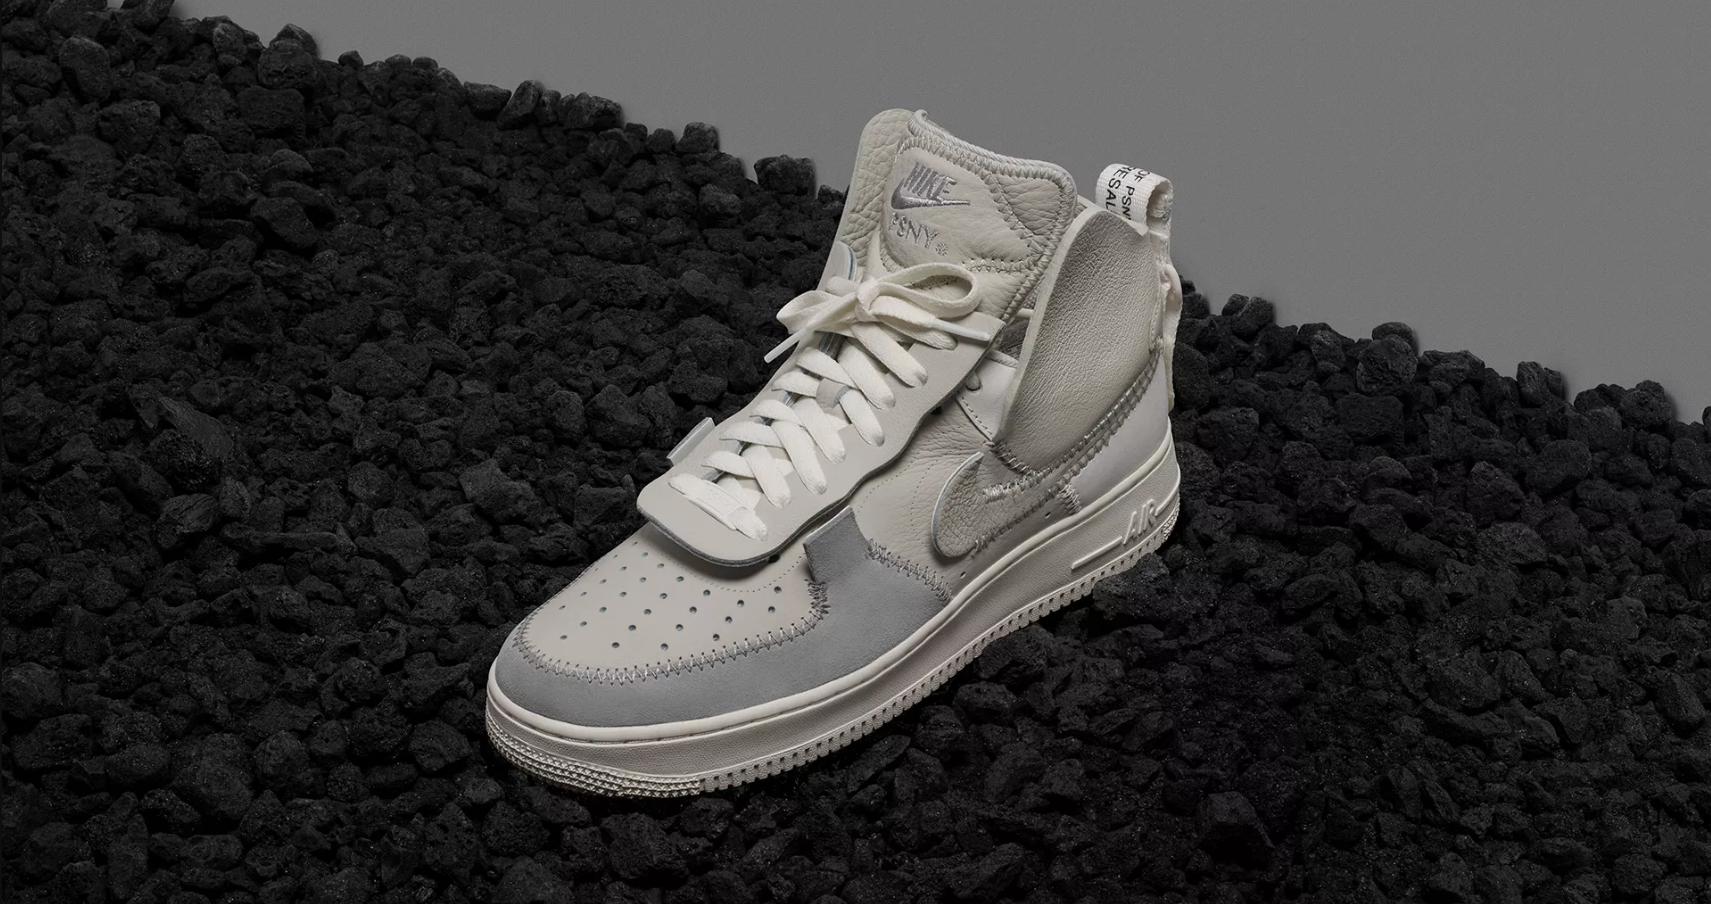 PSNY x Air Force 1 High um 9 Uhr #airforce #complexkicks